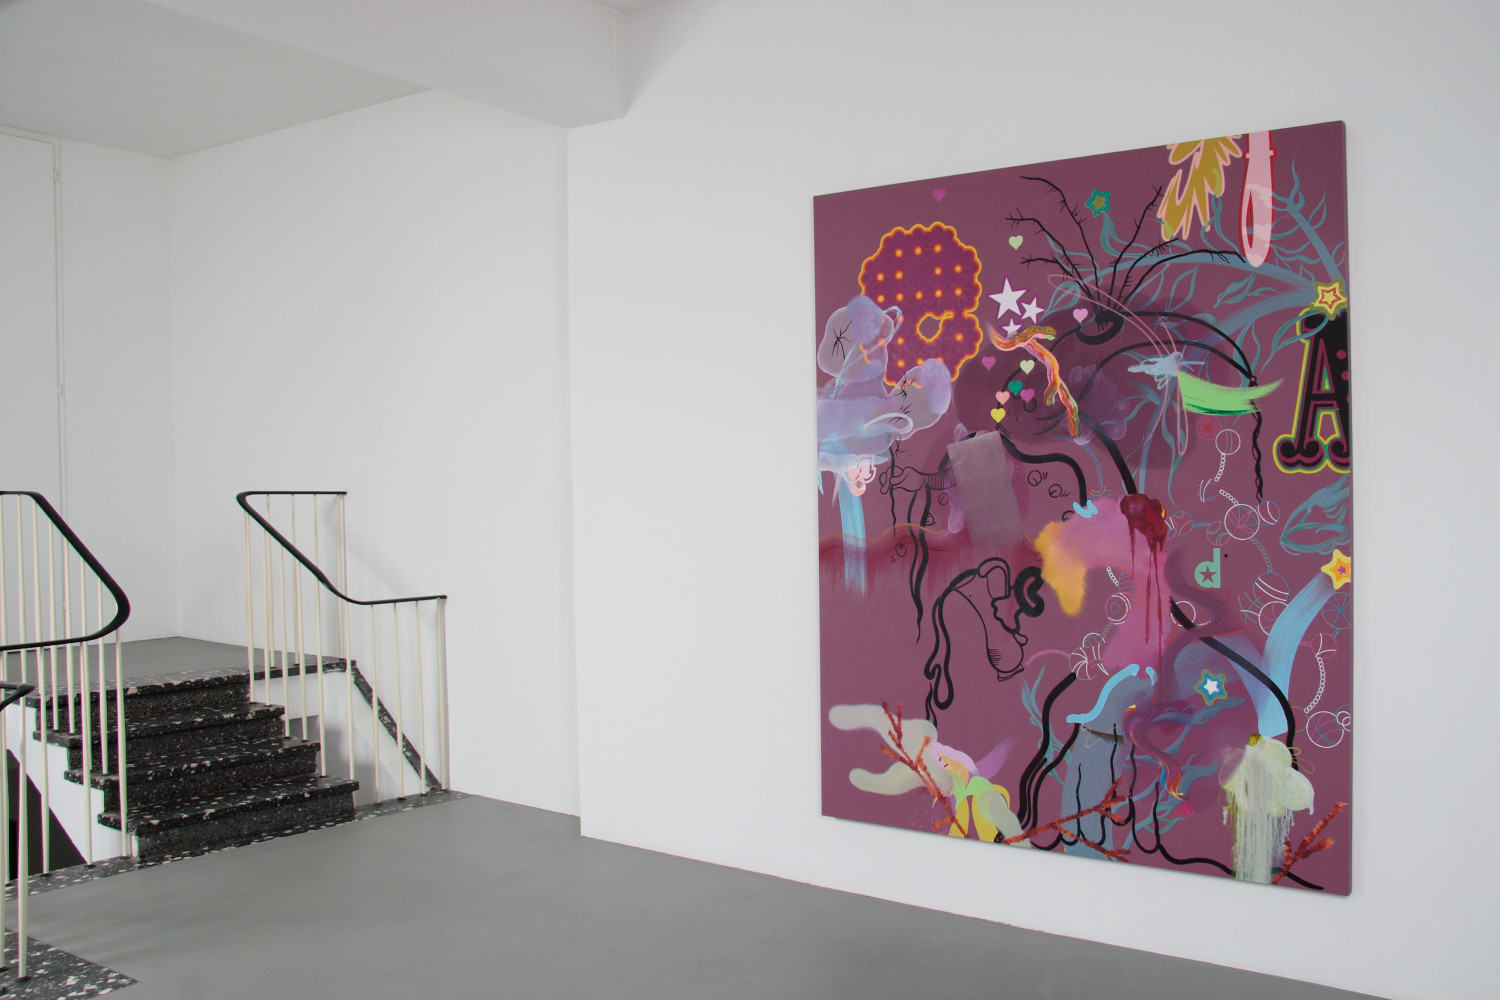 Fiona Rae, 'Grotto', Installation view, 2005